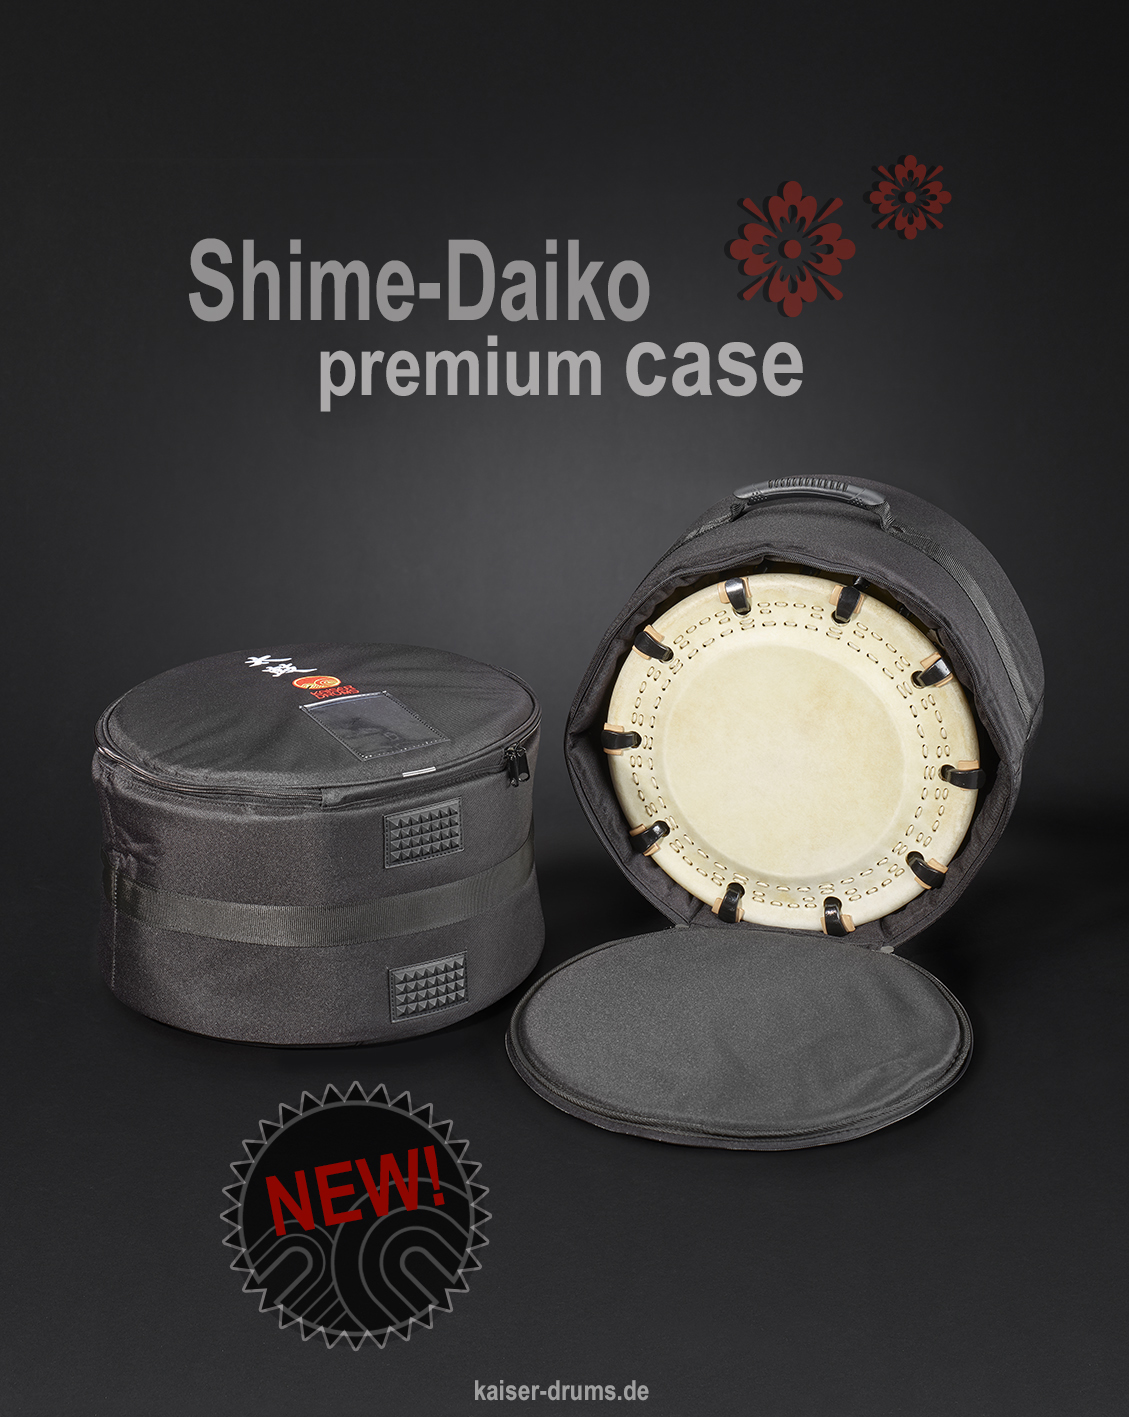 New Shime-Daiko premium case from KAISER DRUMS